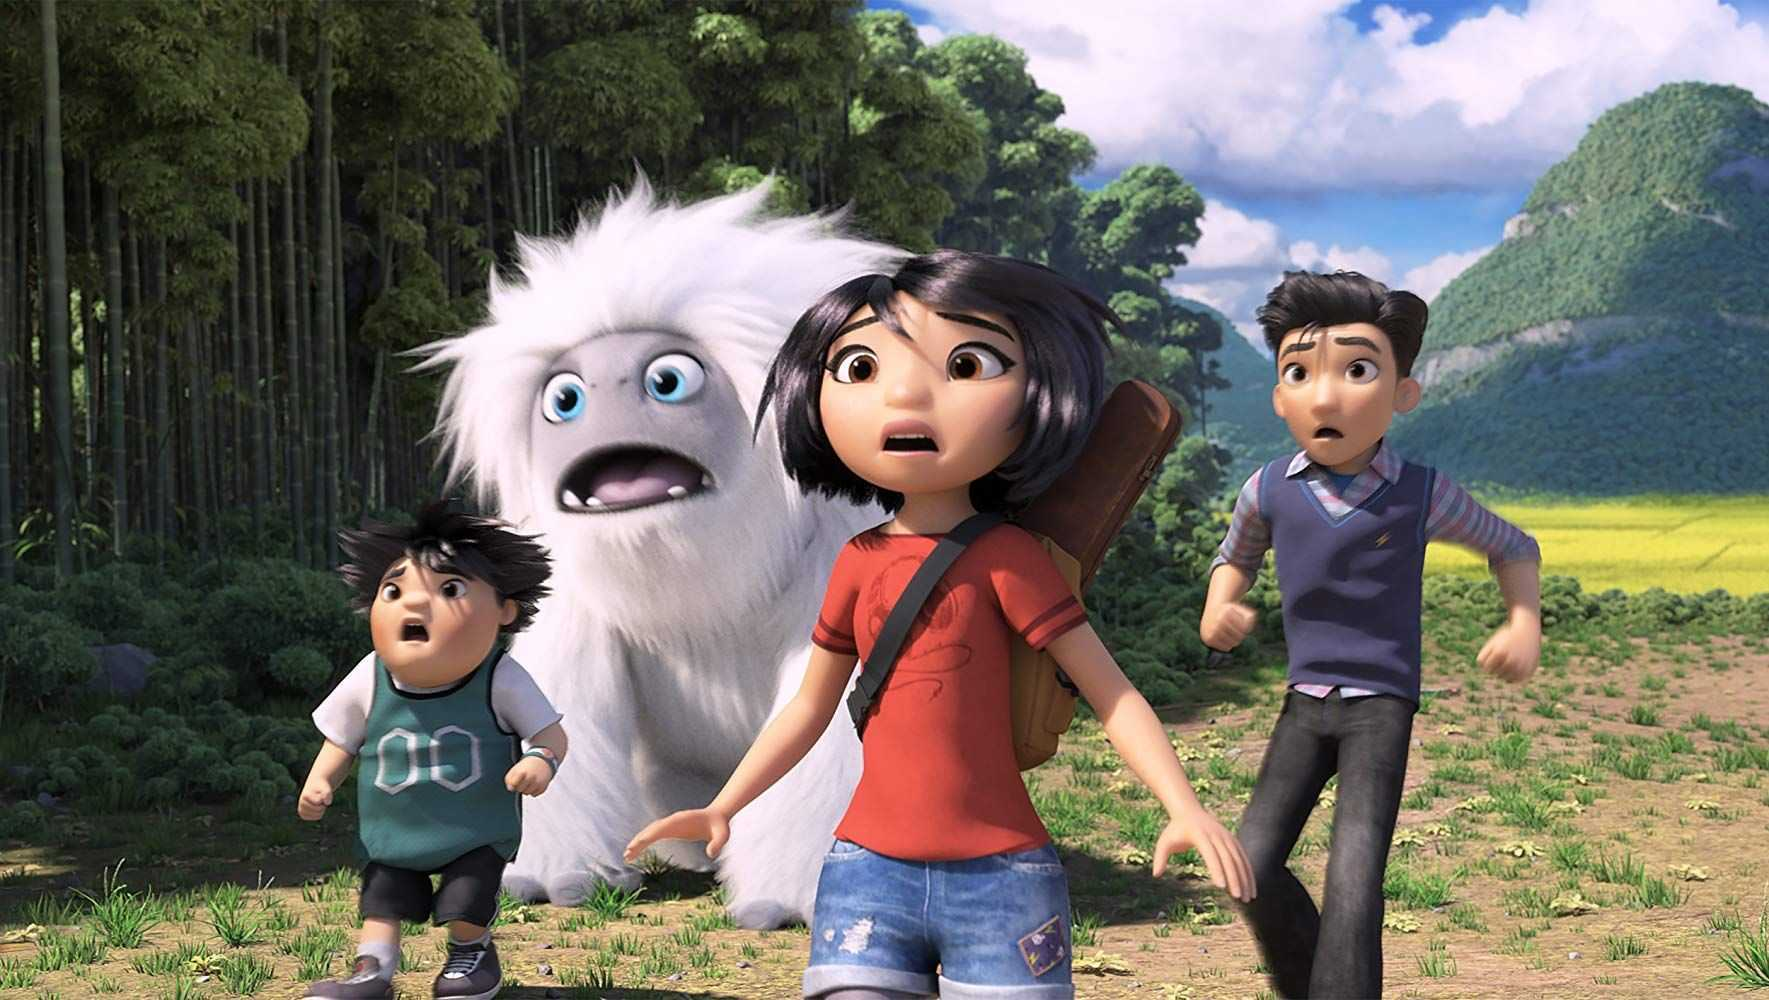 (l to r) Peng, Everest the Yei, Yi and Jin on their journey across China in Abominable (2019)